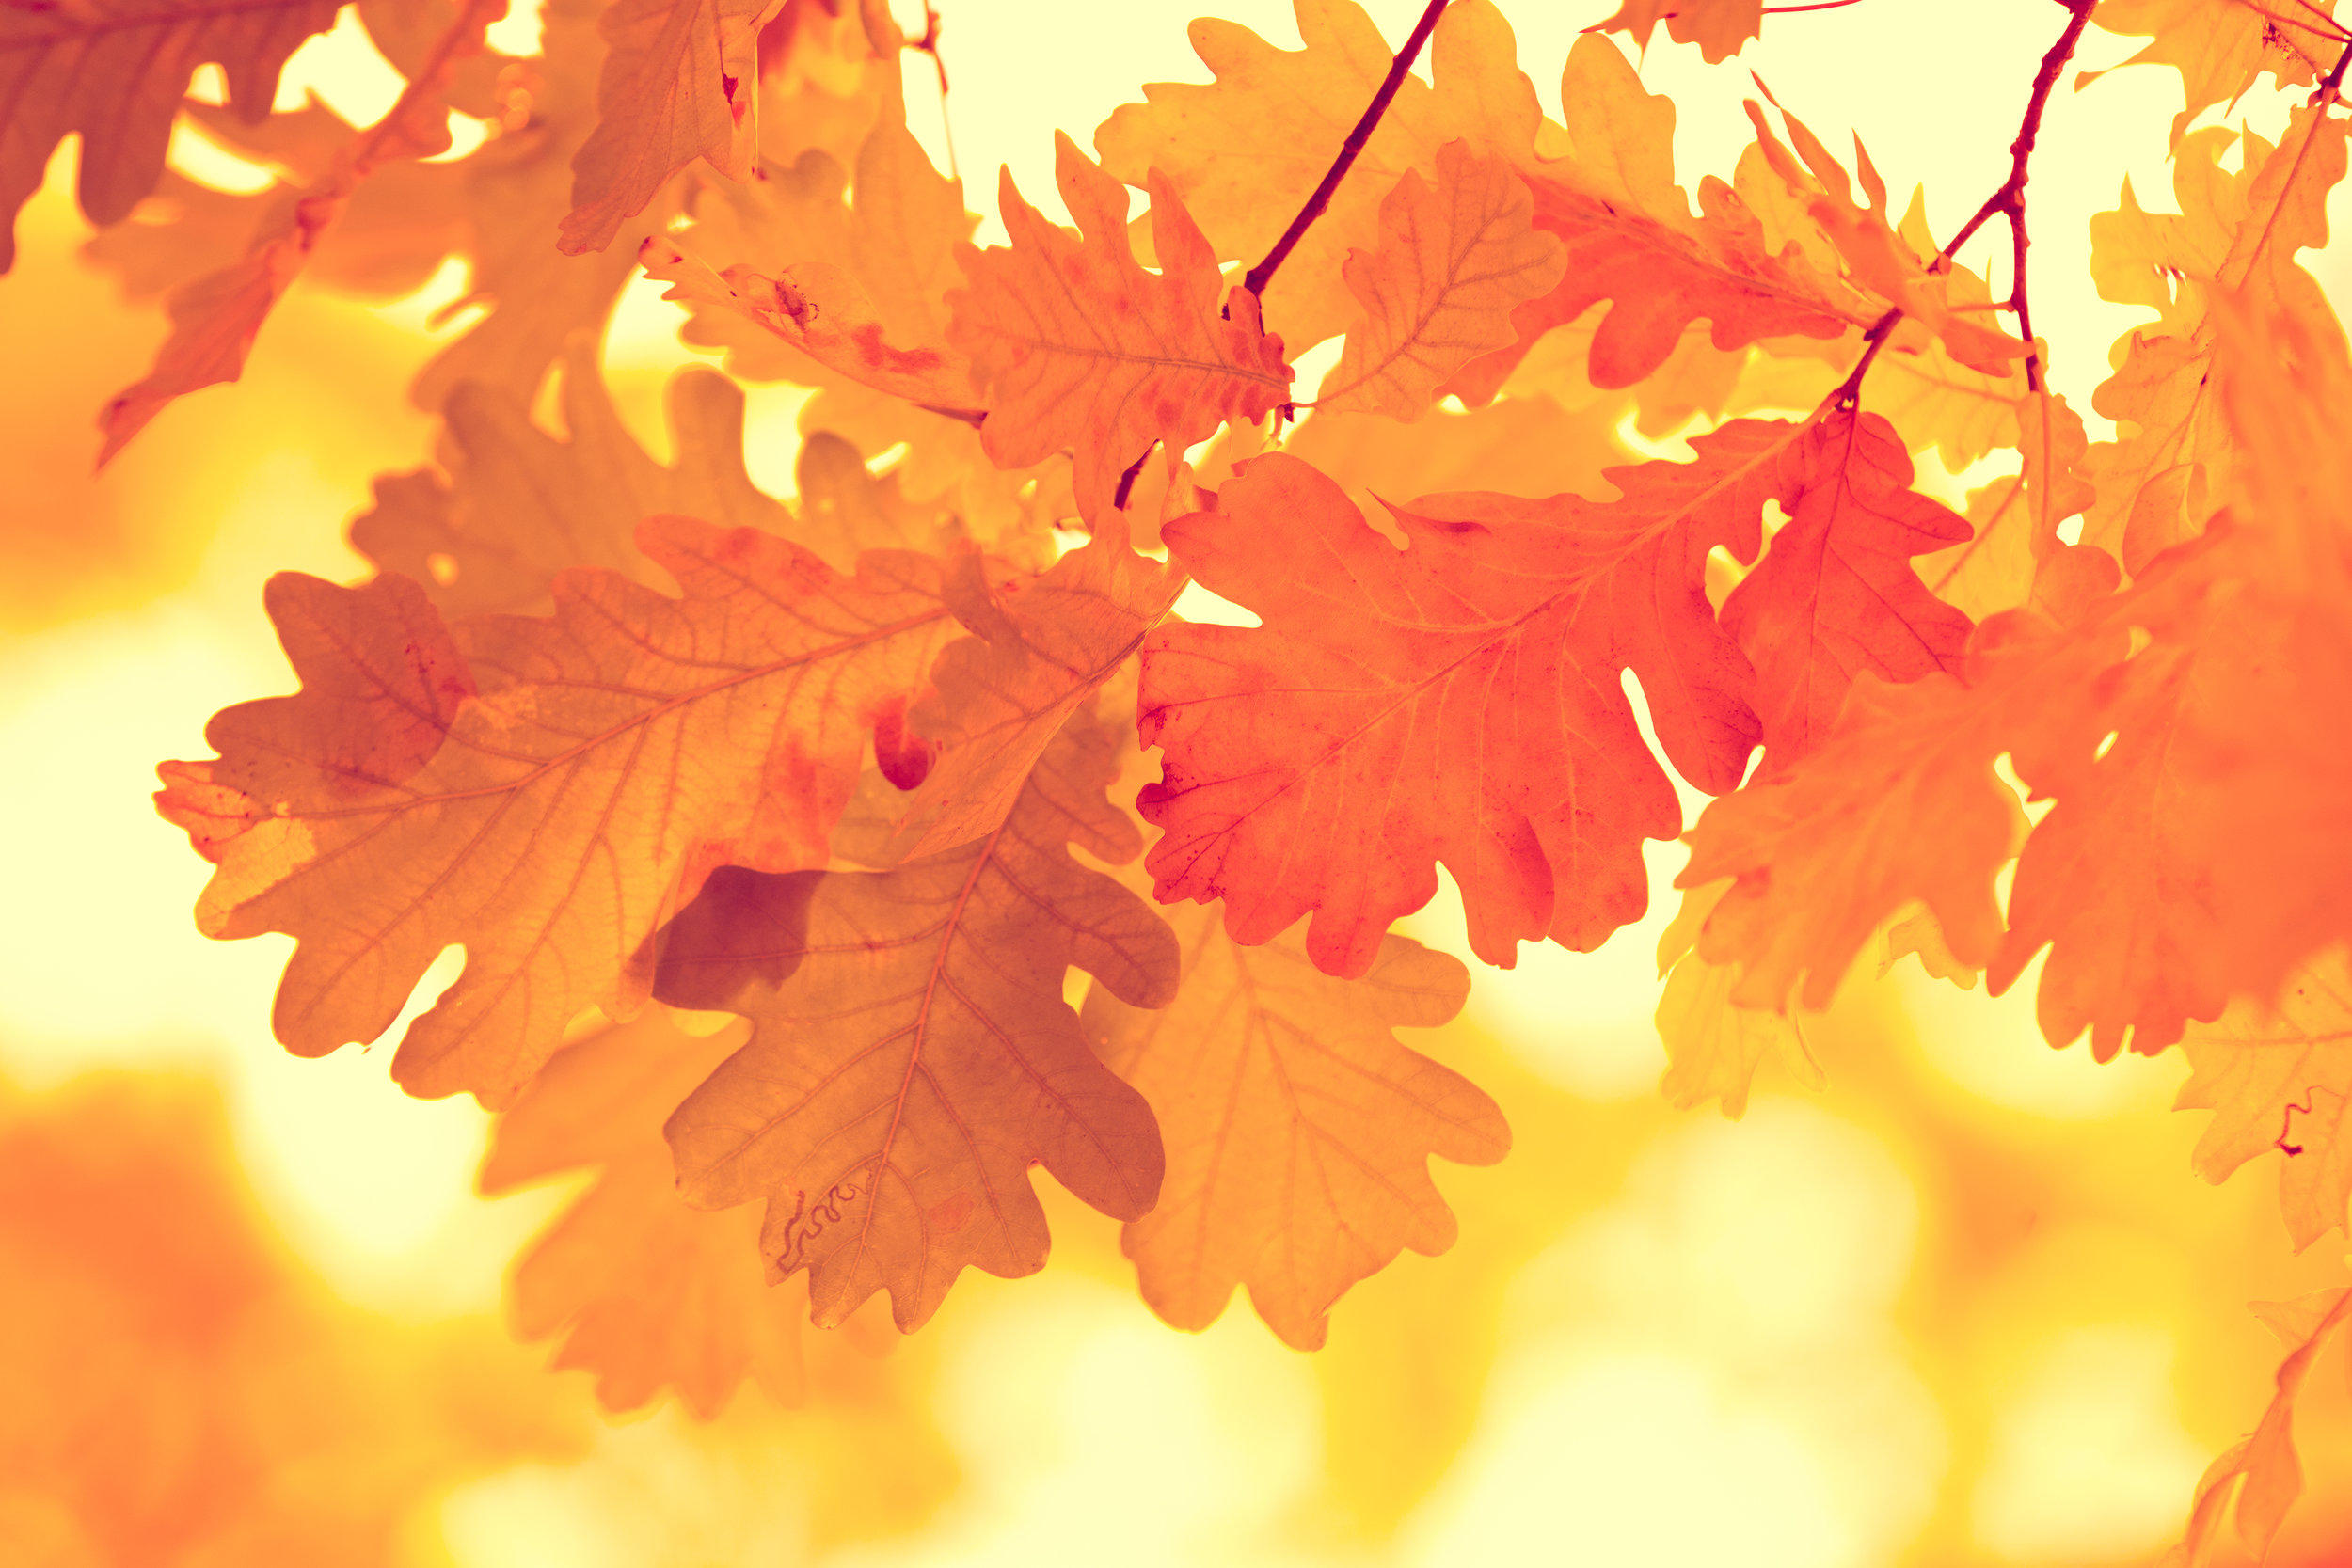 storyblocks-oak-branch-with-yellow-leaves-in-the-forest-in-autumn_r8ehvBqDJM.jpg